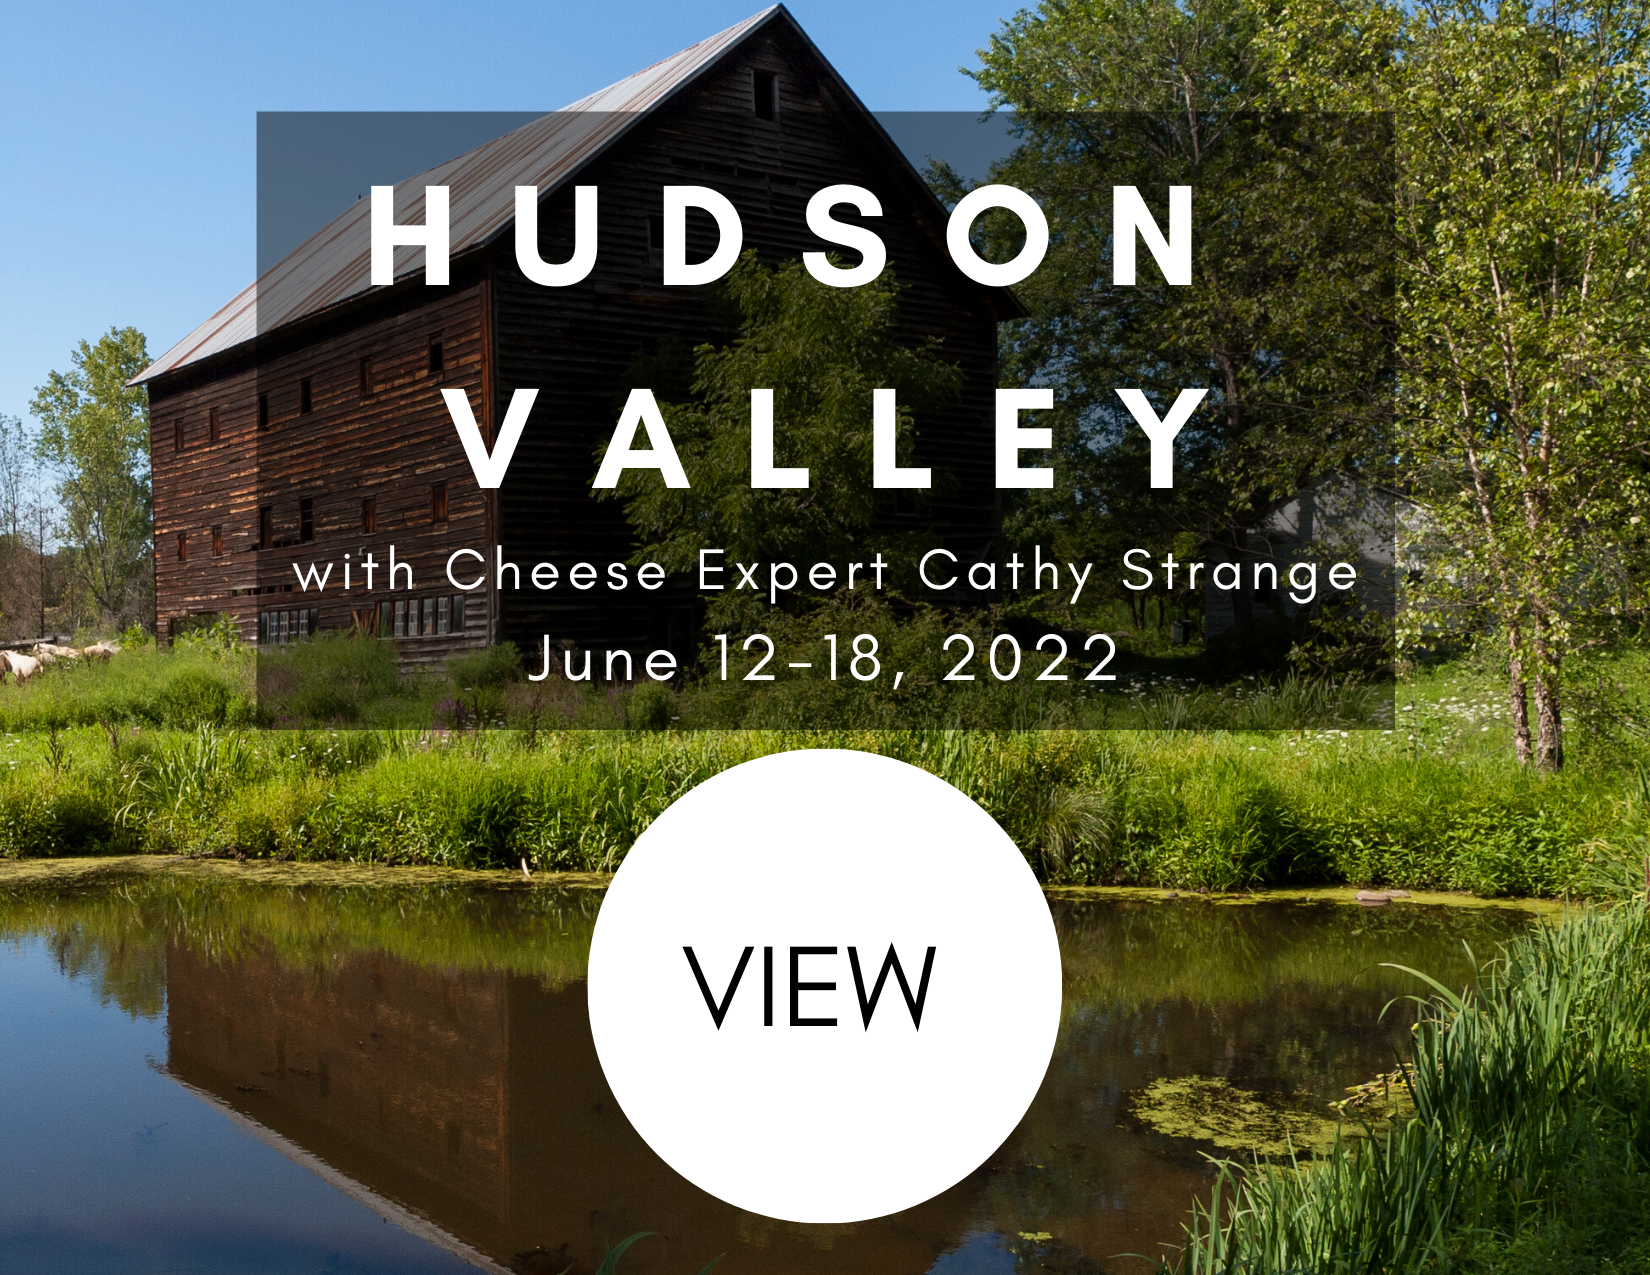 Hudson Valley culinary tour June 12-18, 2022